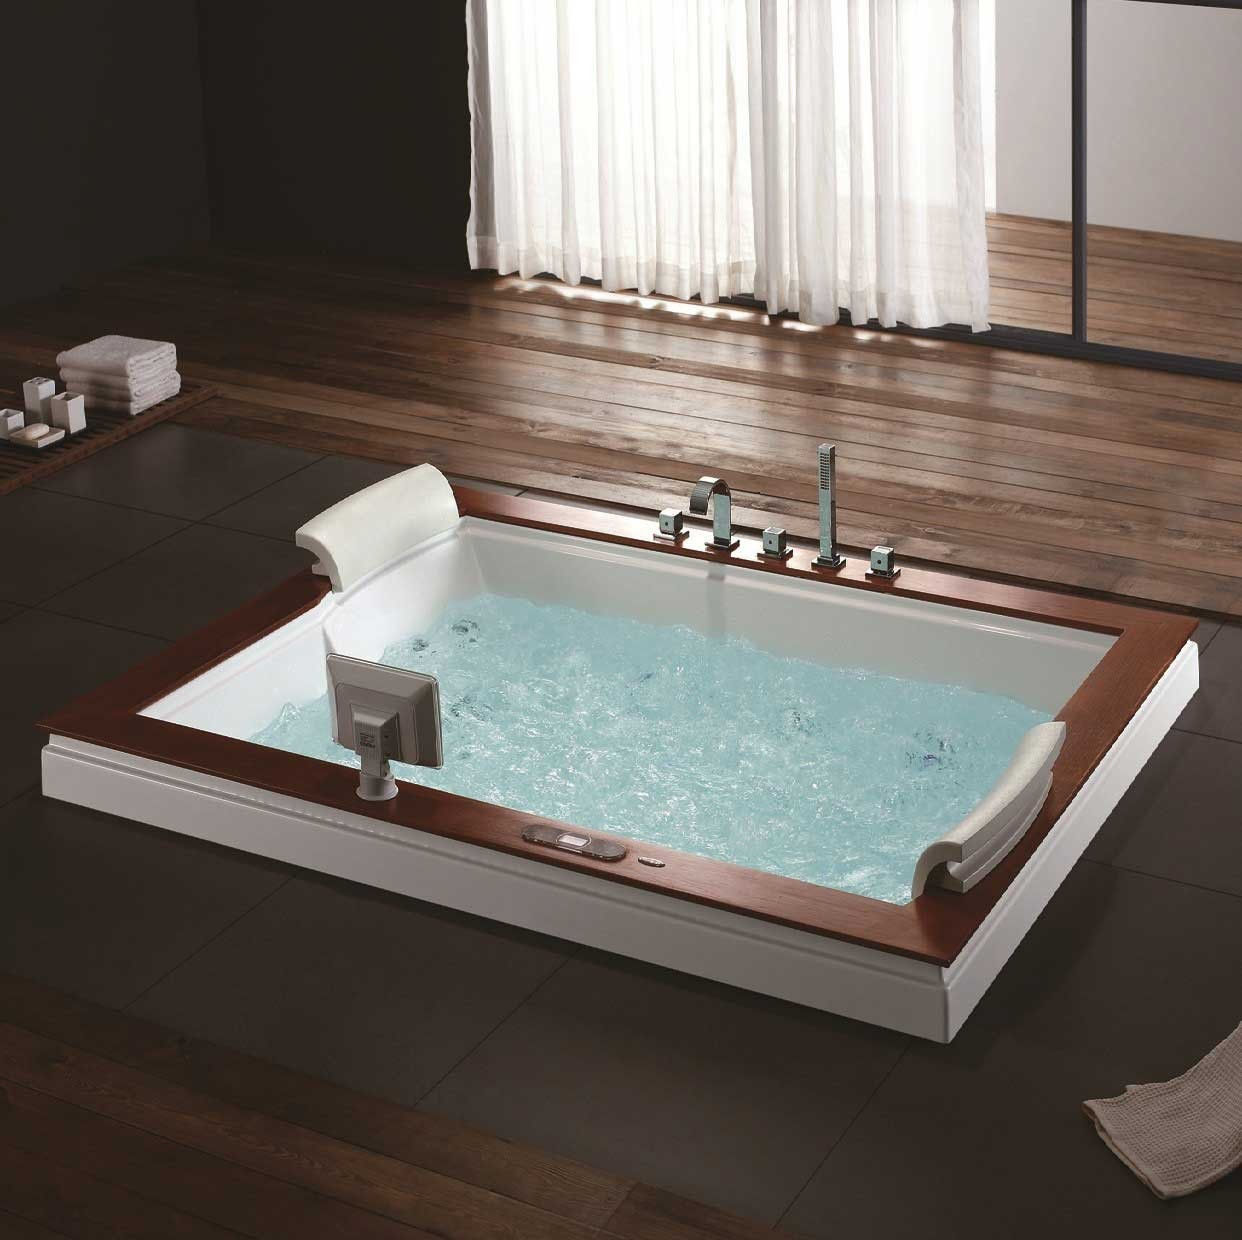 whirlpool tub. Burlington Luxury Whirlpool Tub